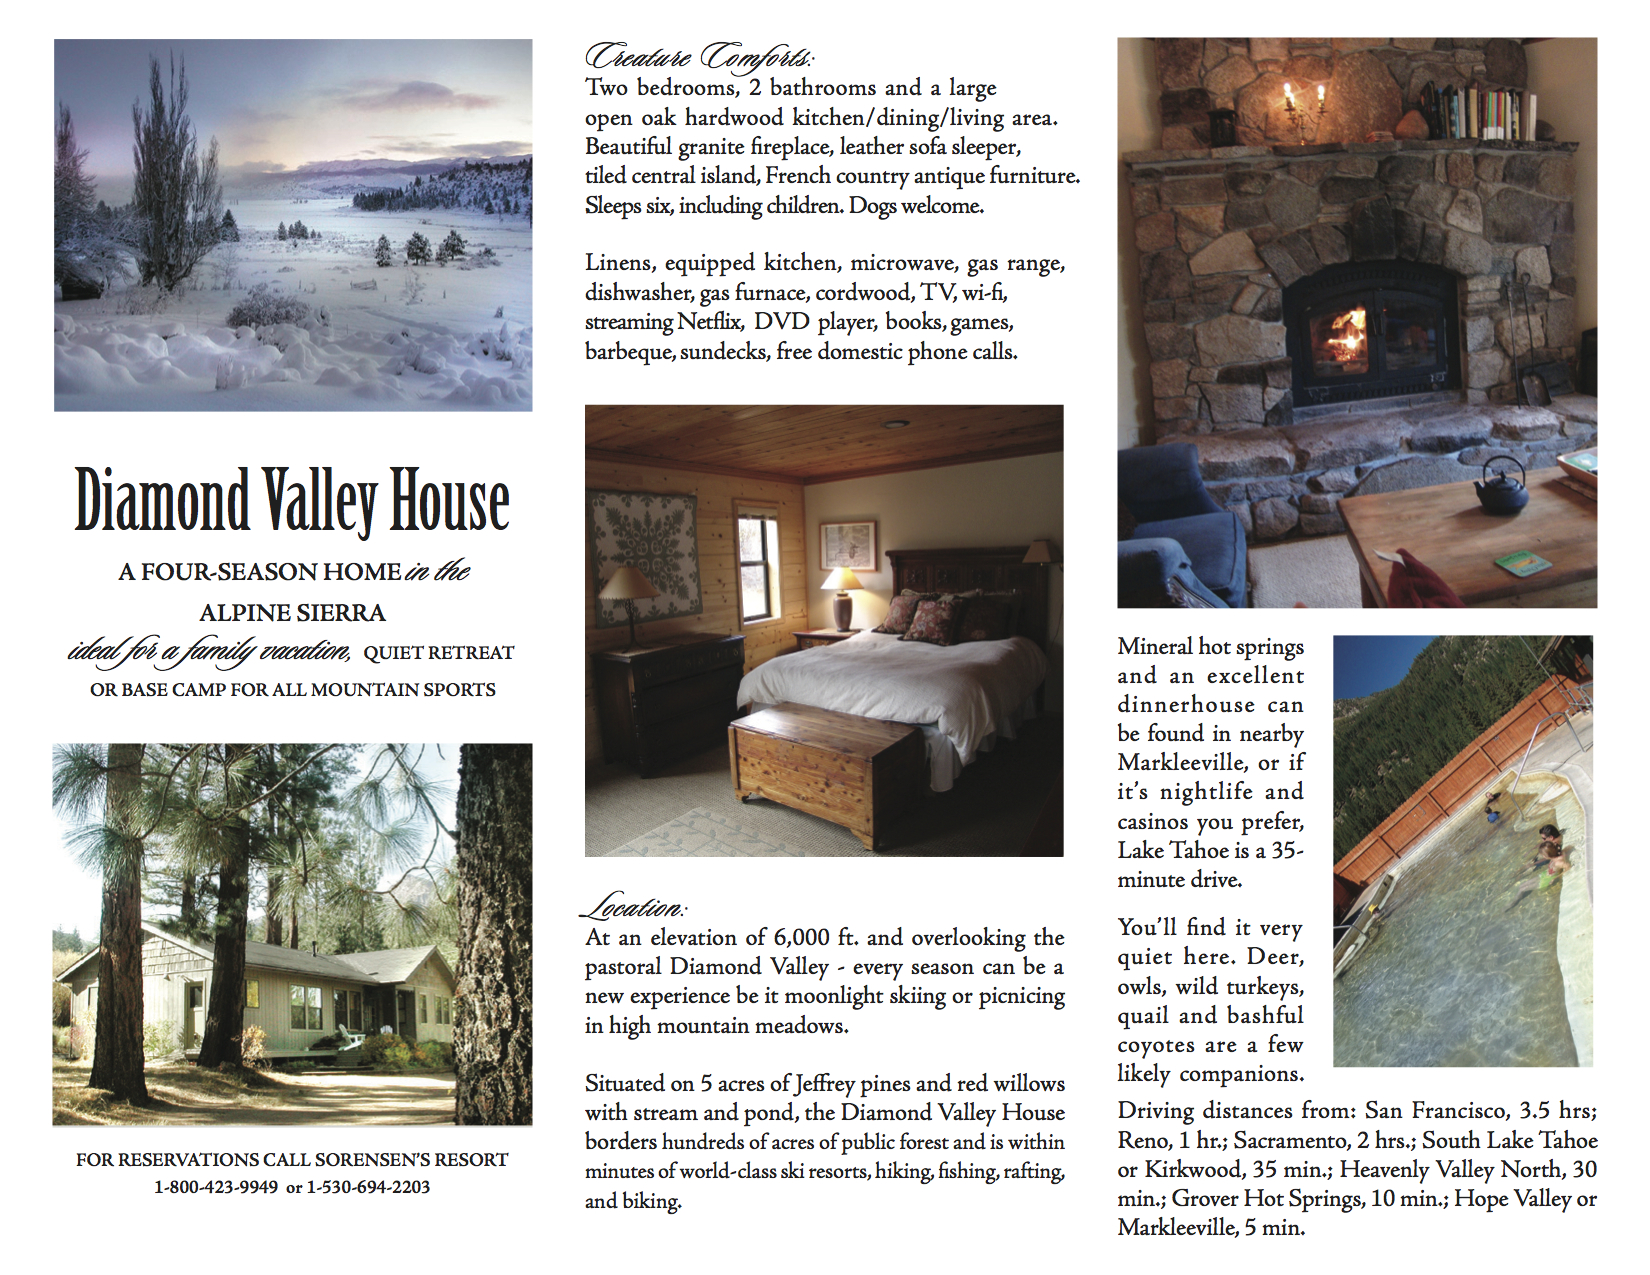 The deluxe mountain hideaway close to Kirkwood and Heavenly Valley